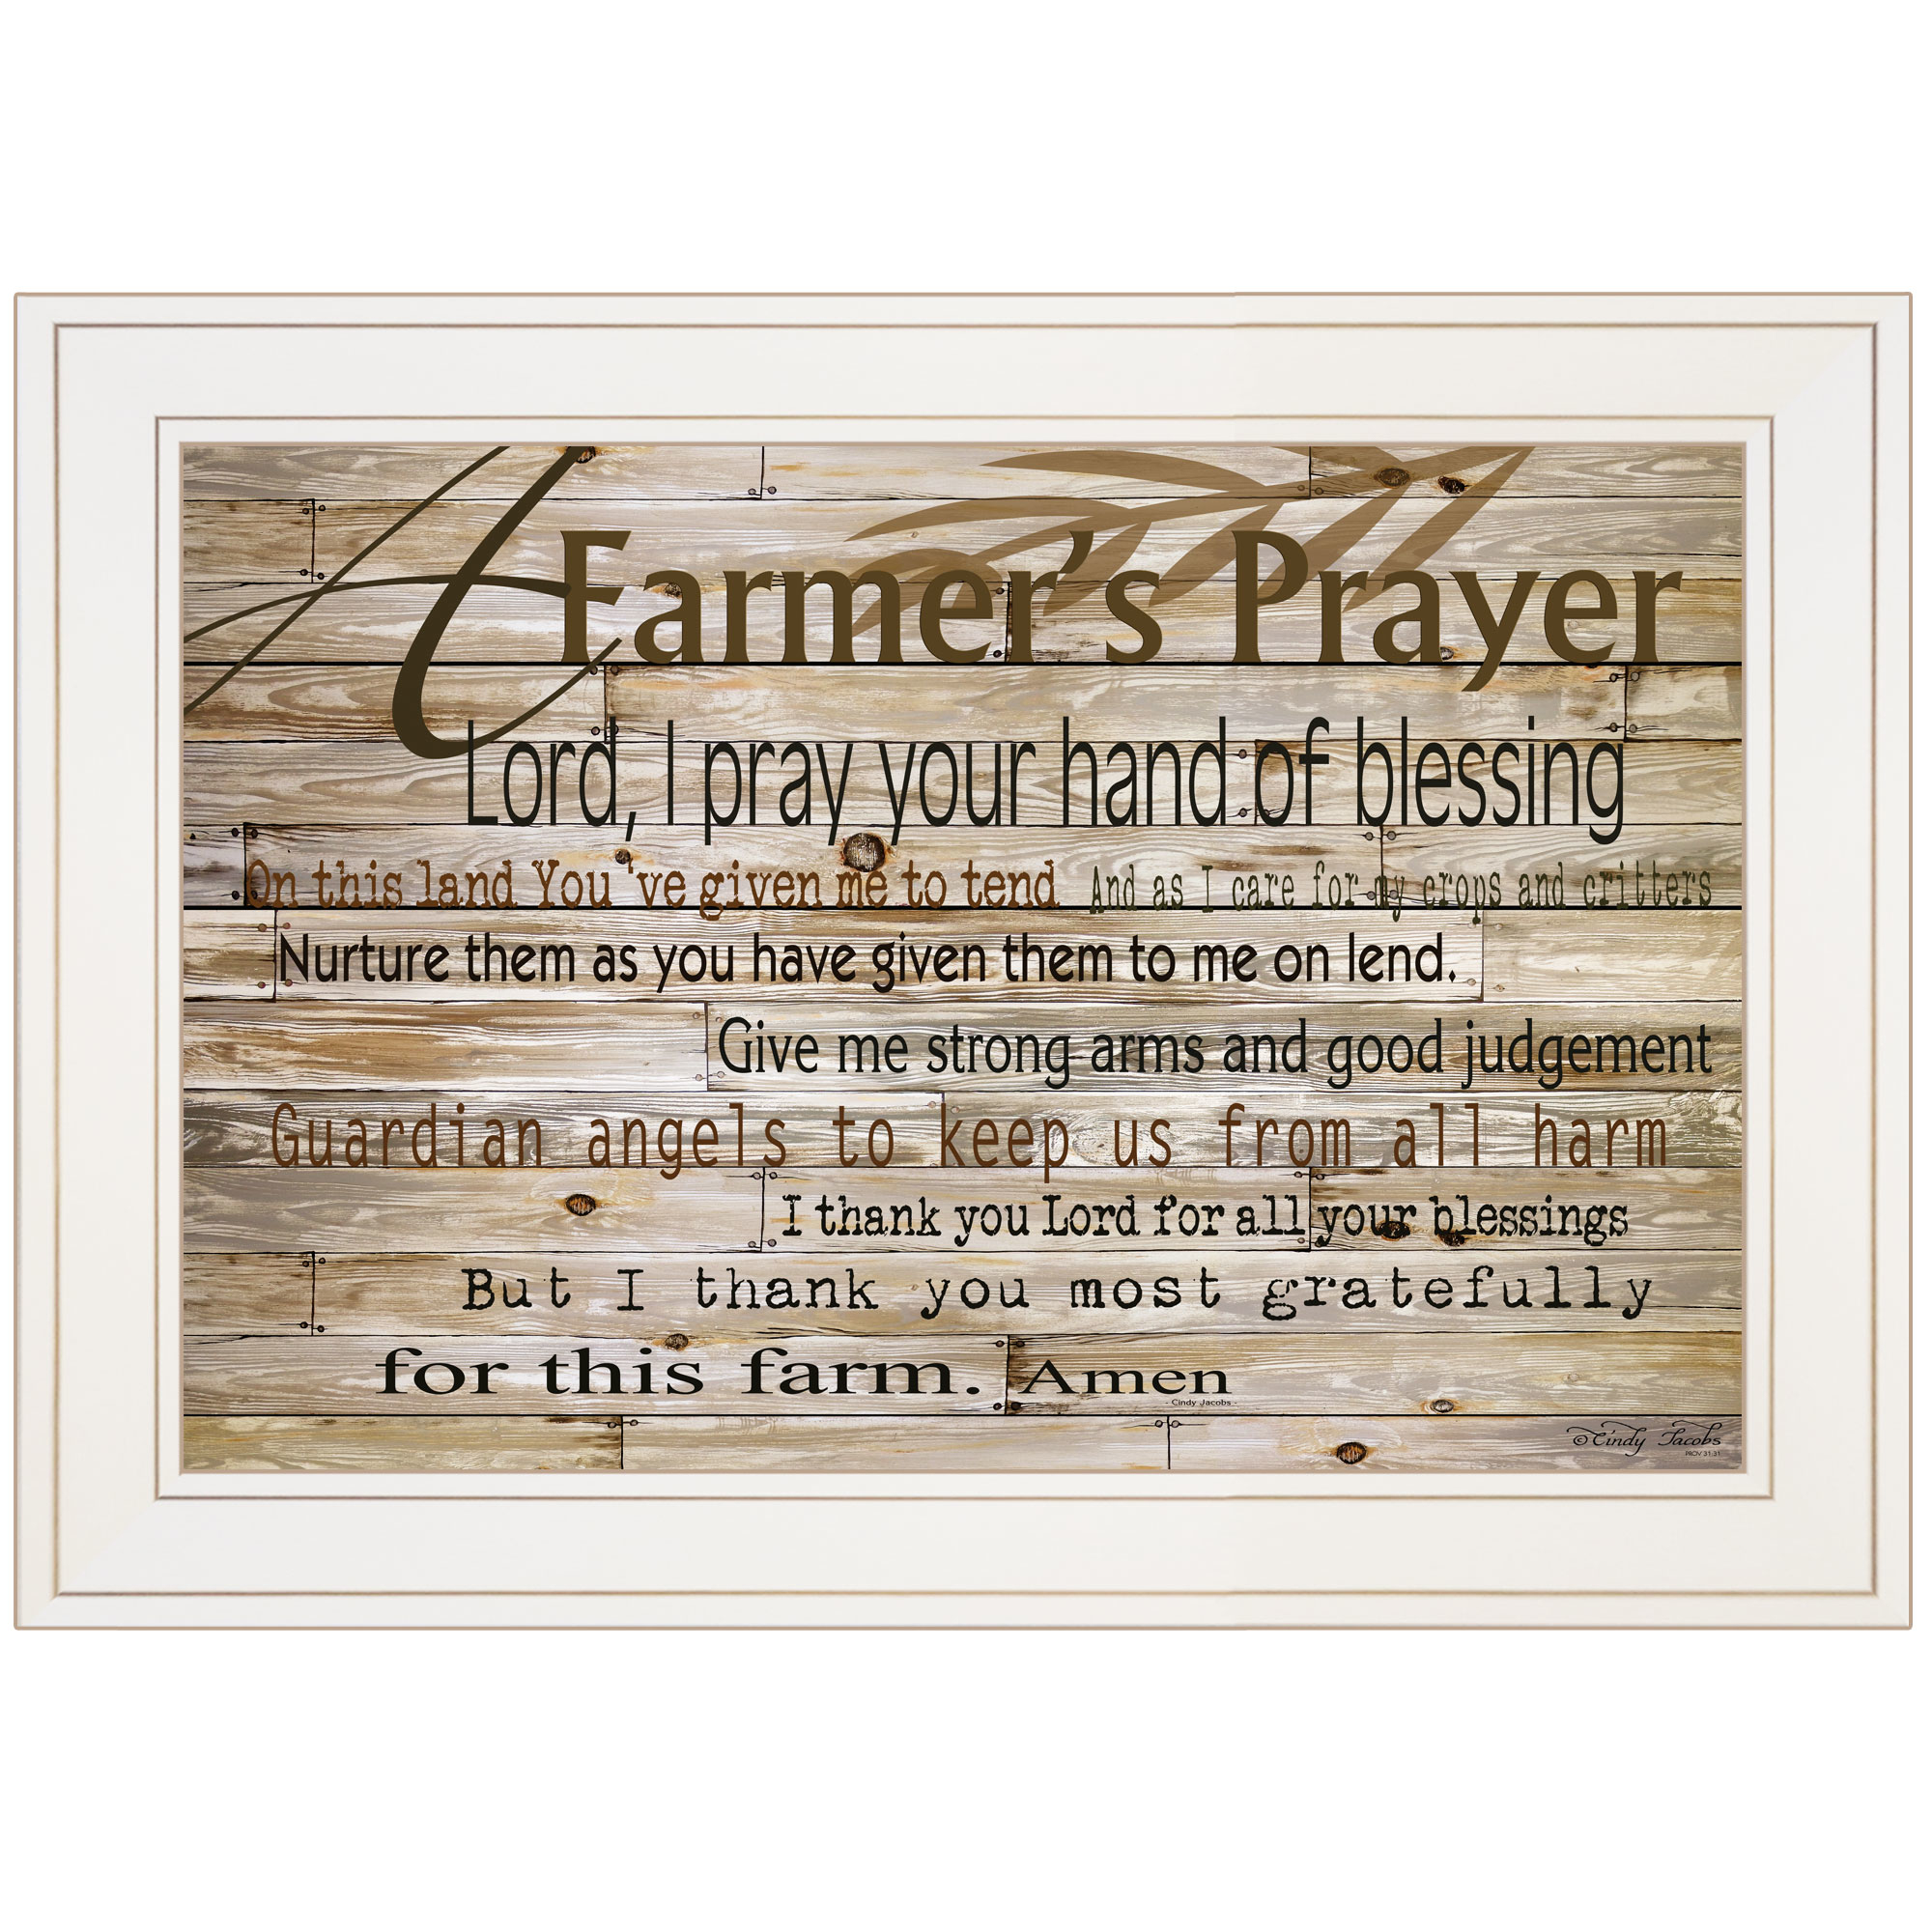 Cin122-226G A Farmer's Prayer by artisan Cindy Jacobs. This decorative white framed print (21x15) is a prayer that farmer's would pray for the blessing of they land. Print is textured no need for glass, and arrives ready to hang. * Textured Artwork with a 'rolled on' acid-free acrylic coating to create a canvas painting effect. * UV Protectant Coating protects artwork from fading. No glass is necessary. * Moulding adds natural beauty to the framed art. Frame is keyholed for the easy hanging. * This Fine Home Decor piece made in the USA by Woman Owned Business (Wbe) is a perfect gift for a friend or relative. *